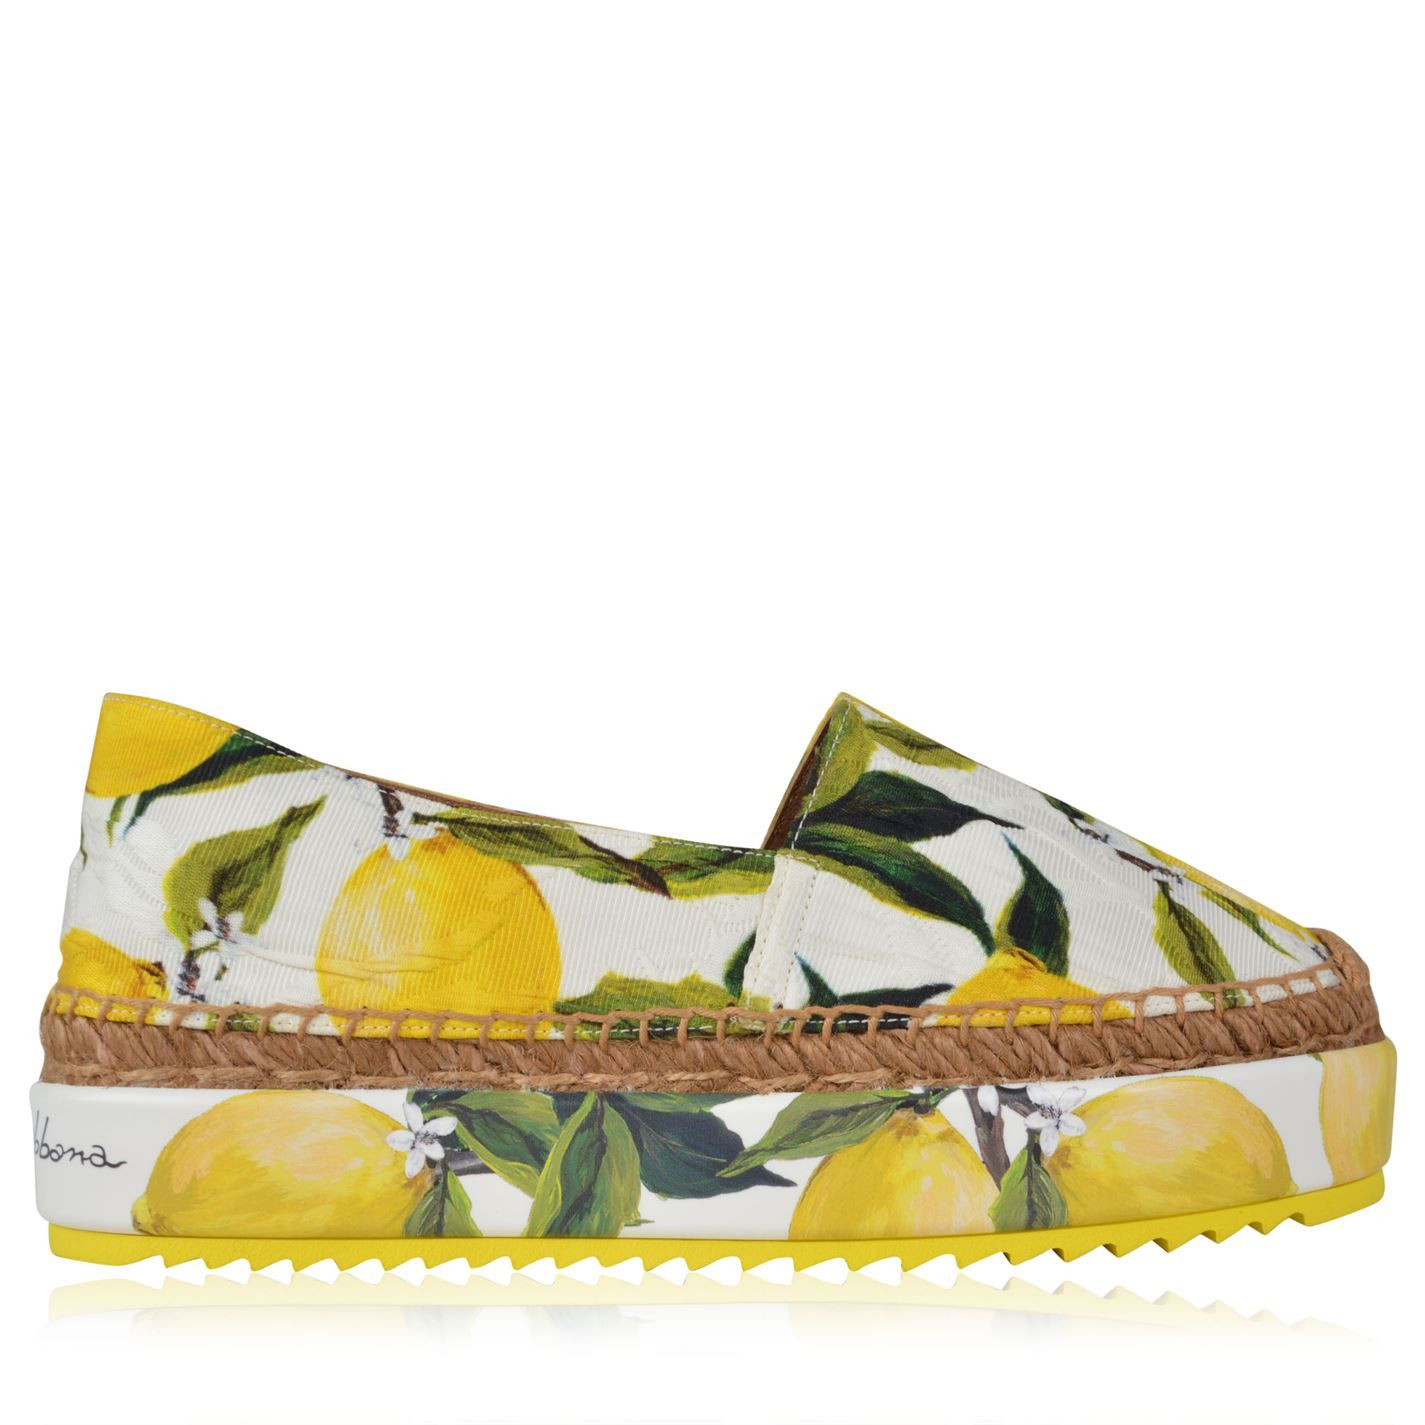 There's nothing more fun than these Dolce and Gabbana citrus espadrilles.  We approve.